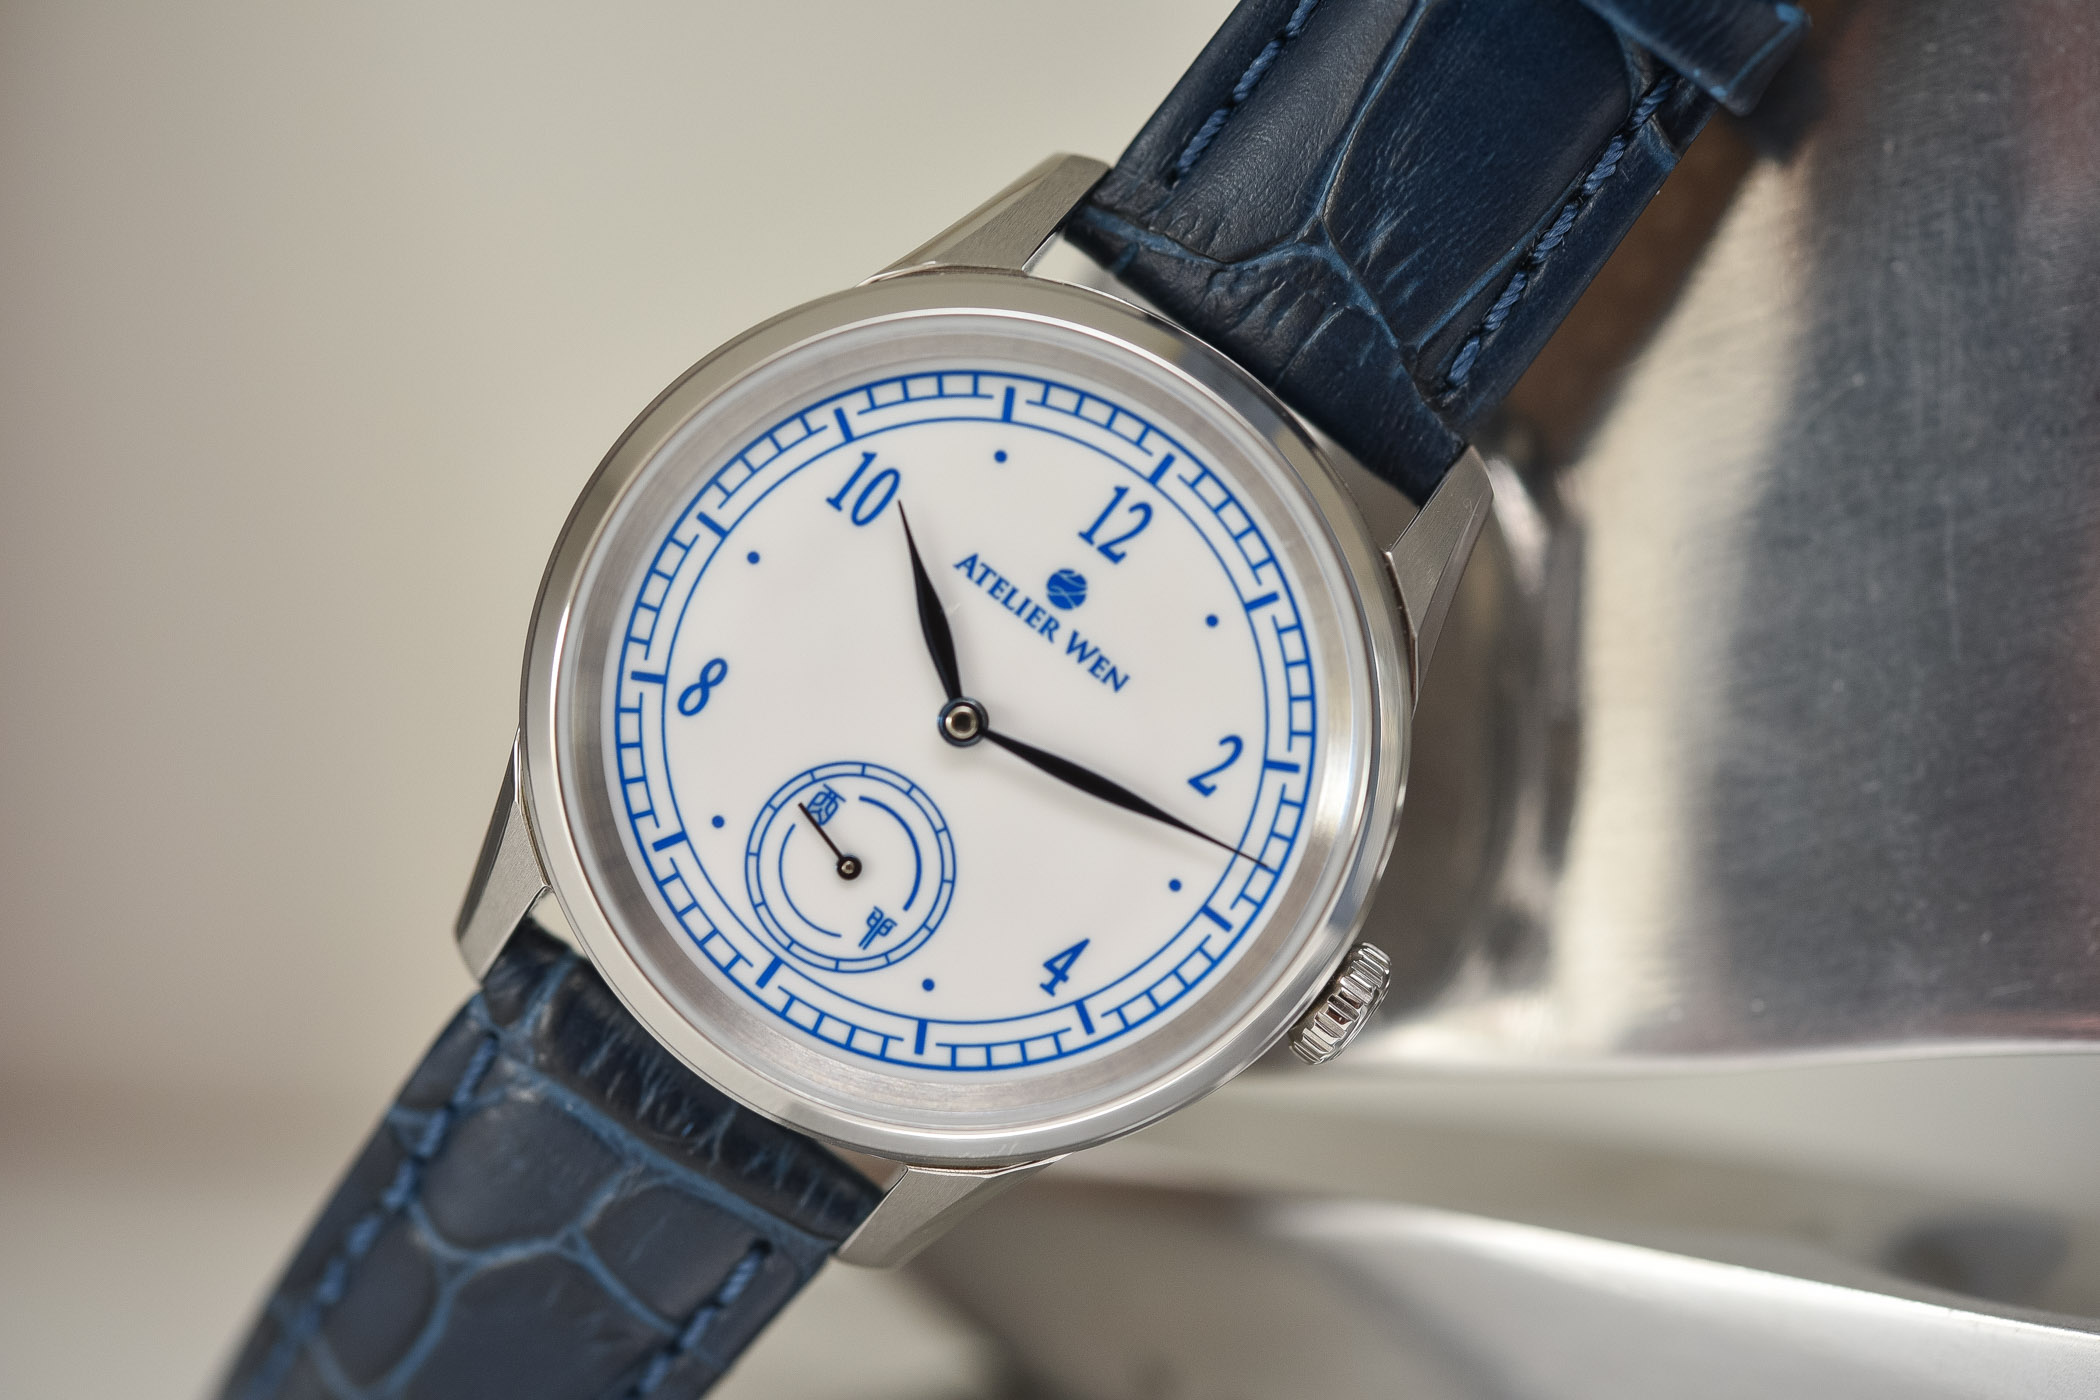 Atelier Wen Procelain dial China-inspired Watches Kickstarter - 3